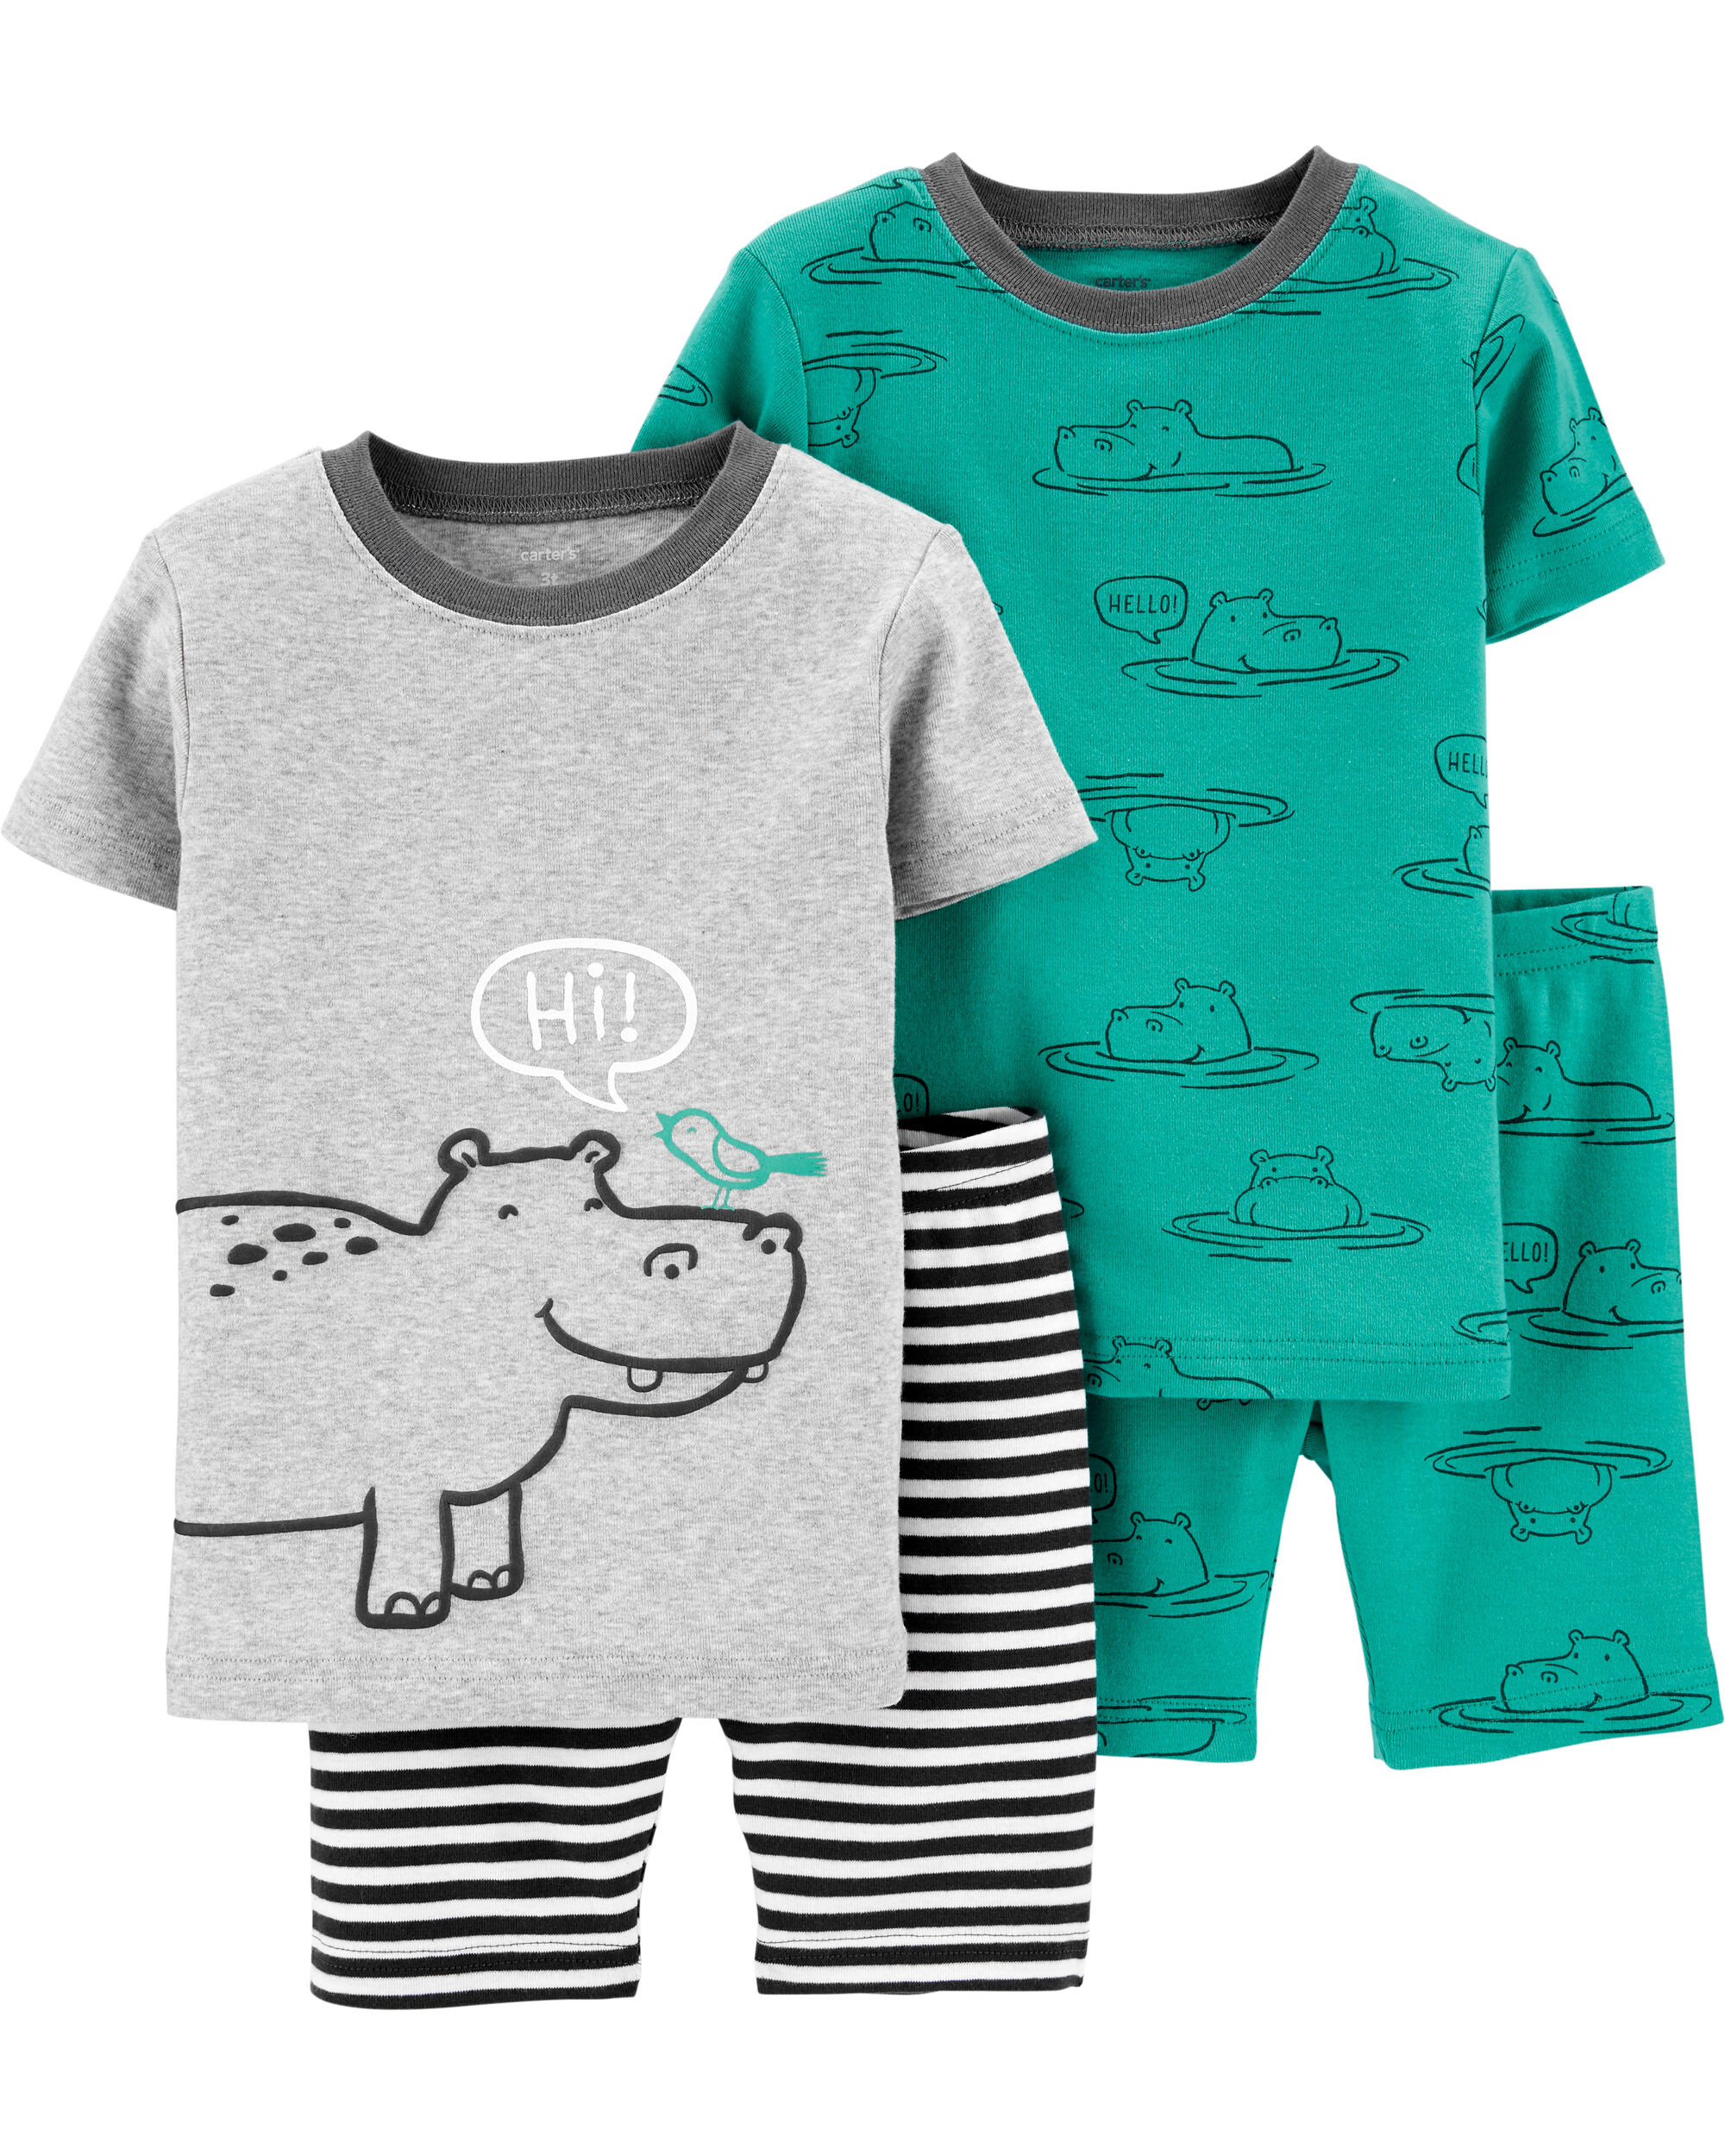 Carters 4-Piece Toddler and Baby Boys Sung fit Cotton Pajamas